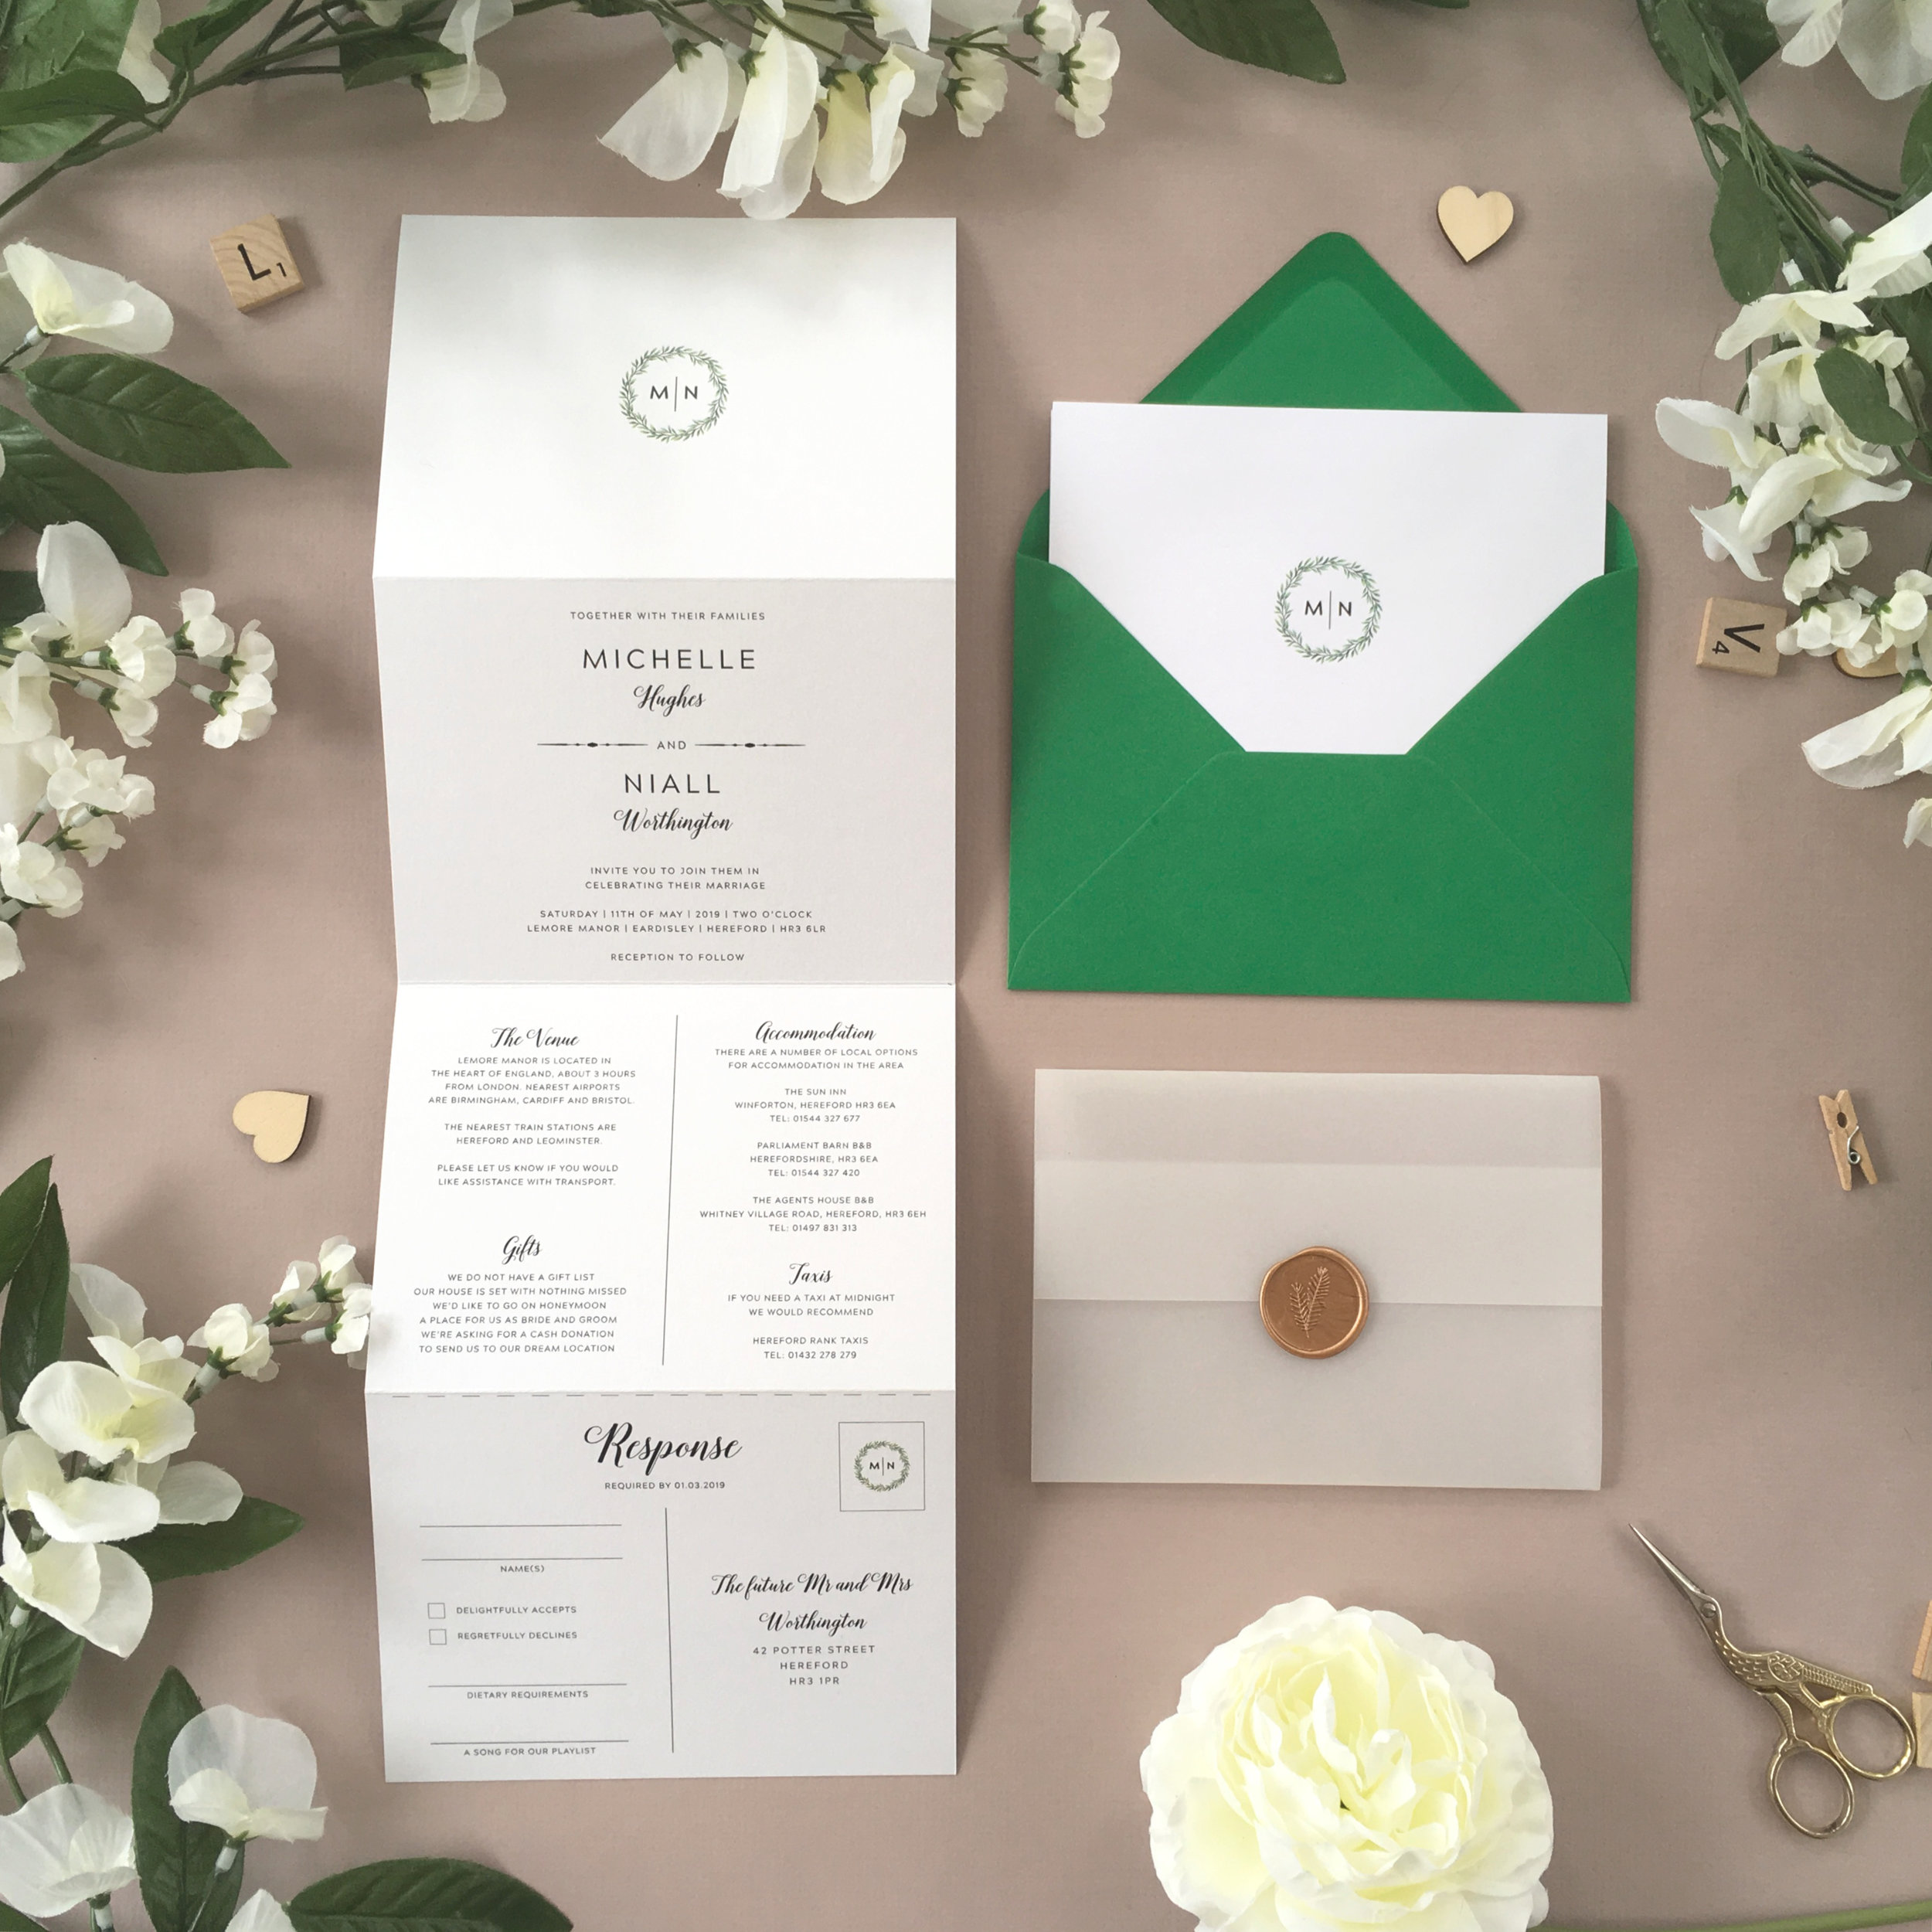 Mansion House - Simple and minimalist with a delicate foliage wreath wrapped around the happy couple's initials, this concertina invitation from our Mansion House collection is a stylish invitation option.Our concertina invitations are a great all-in-one solution, with a detachable RSVP at the bottom of the invitation - all guests need to do is fill in their details, put a stamp in the corner and post!Concertina invitations can be provided on an as-is basis, or can be provided bound with a vellum jacket and timeless wax seal, or tied with ribbon or twine for a lovely hand-finished approach.- Concertina Invitation - from £1.95- Ribbon or Twine - £0.40- Vellum Jacket - £0.40- Wax Seal - £0.85 (Custom engraving also available)White envelope provided as standard with coloured upgrade available.